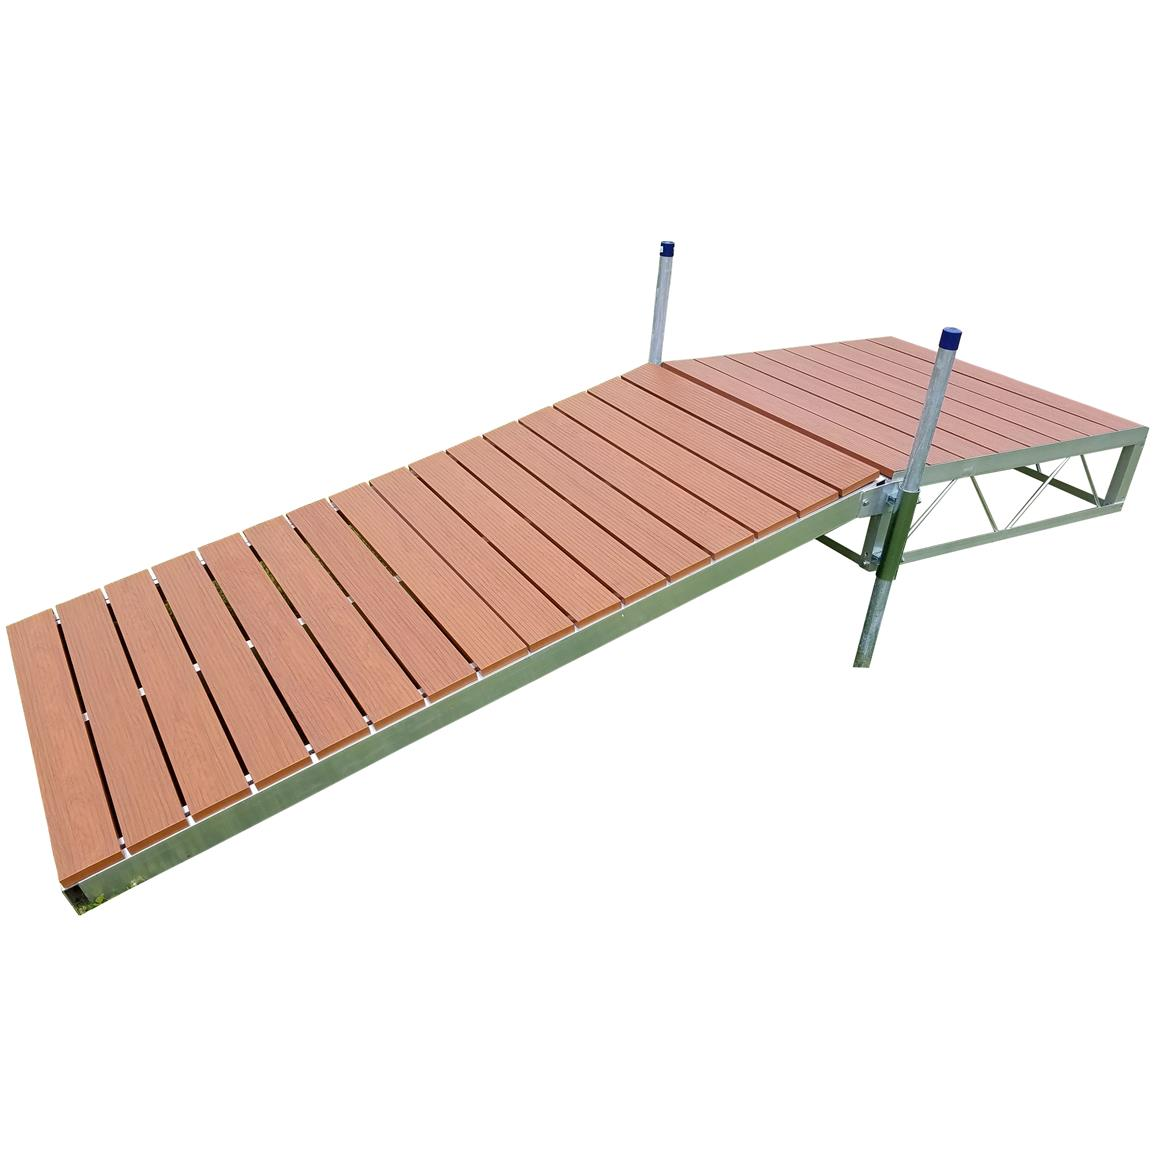 Patriot Shore Ramp Kit, 8 foot Aluminum Deck, Aluminum Brown